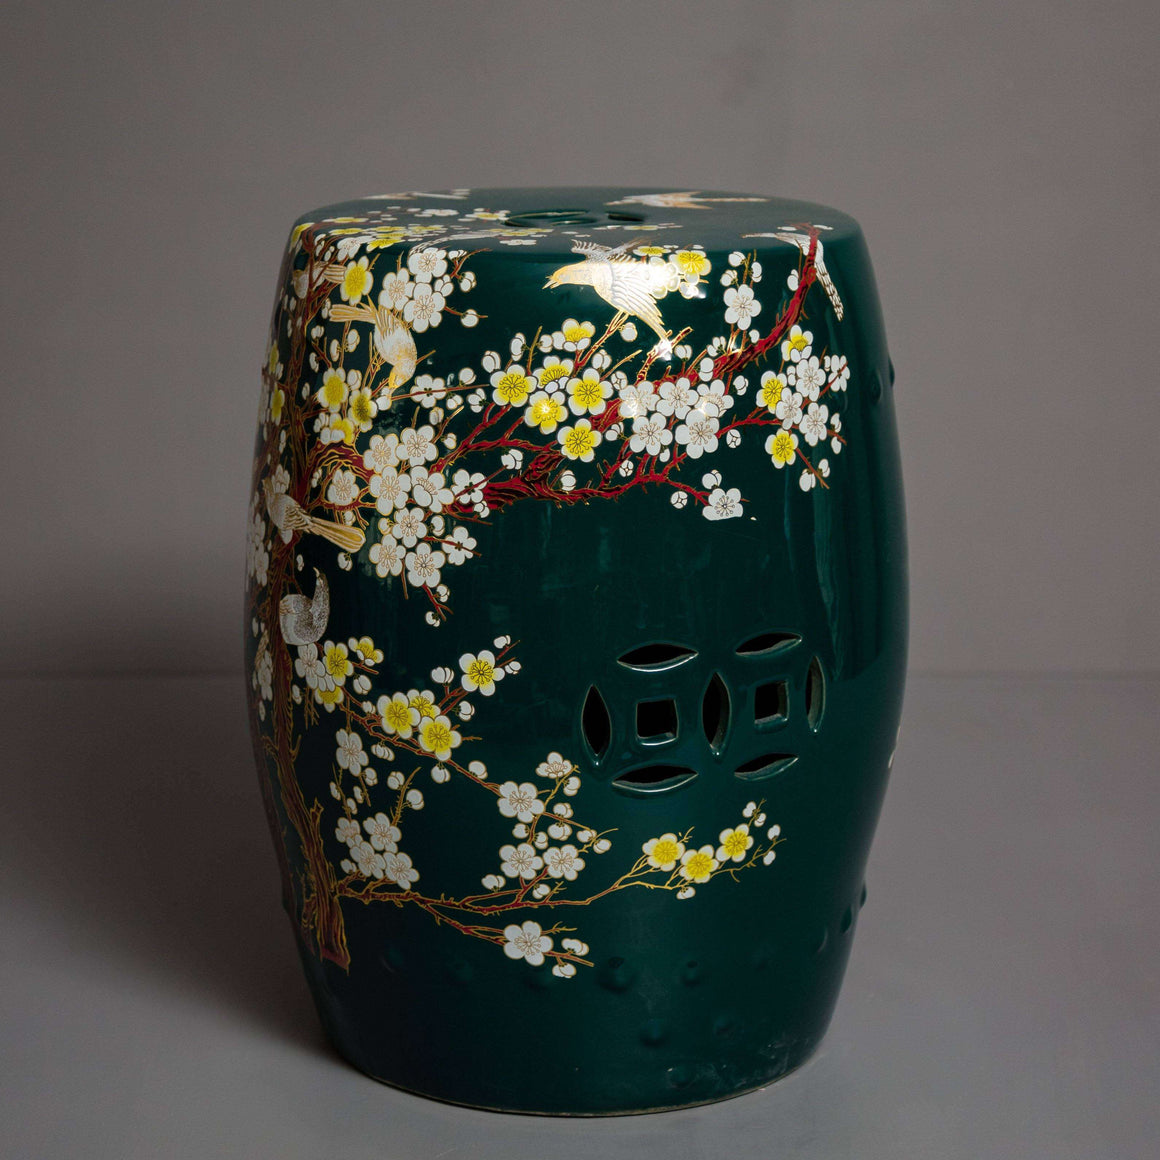 'Cherry Blossom' Hand-painted Living Room Garden Stool - Bottle Green